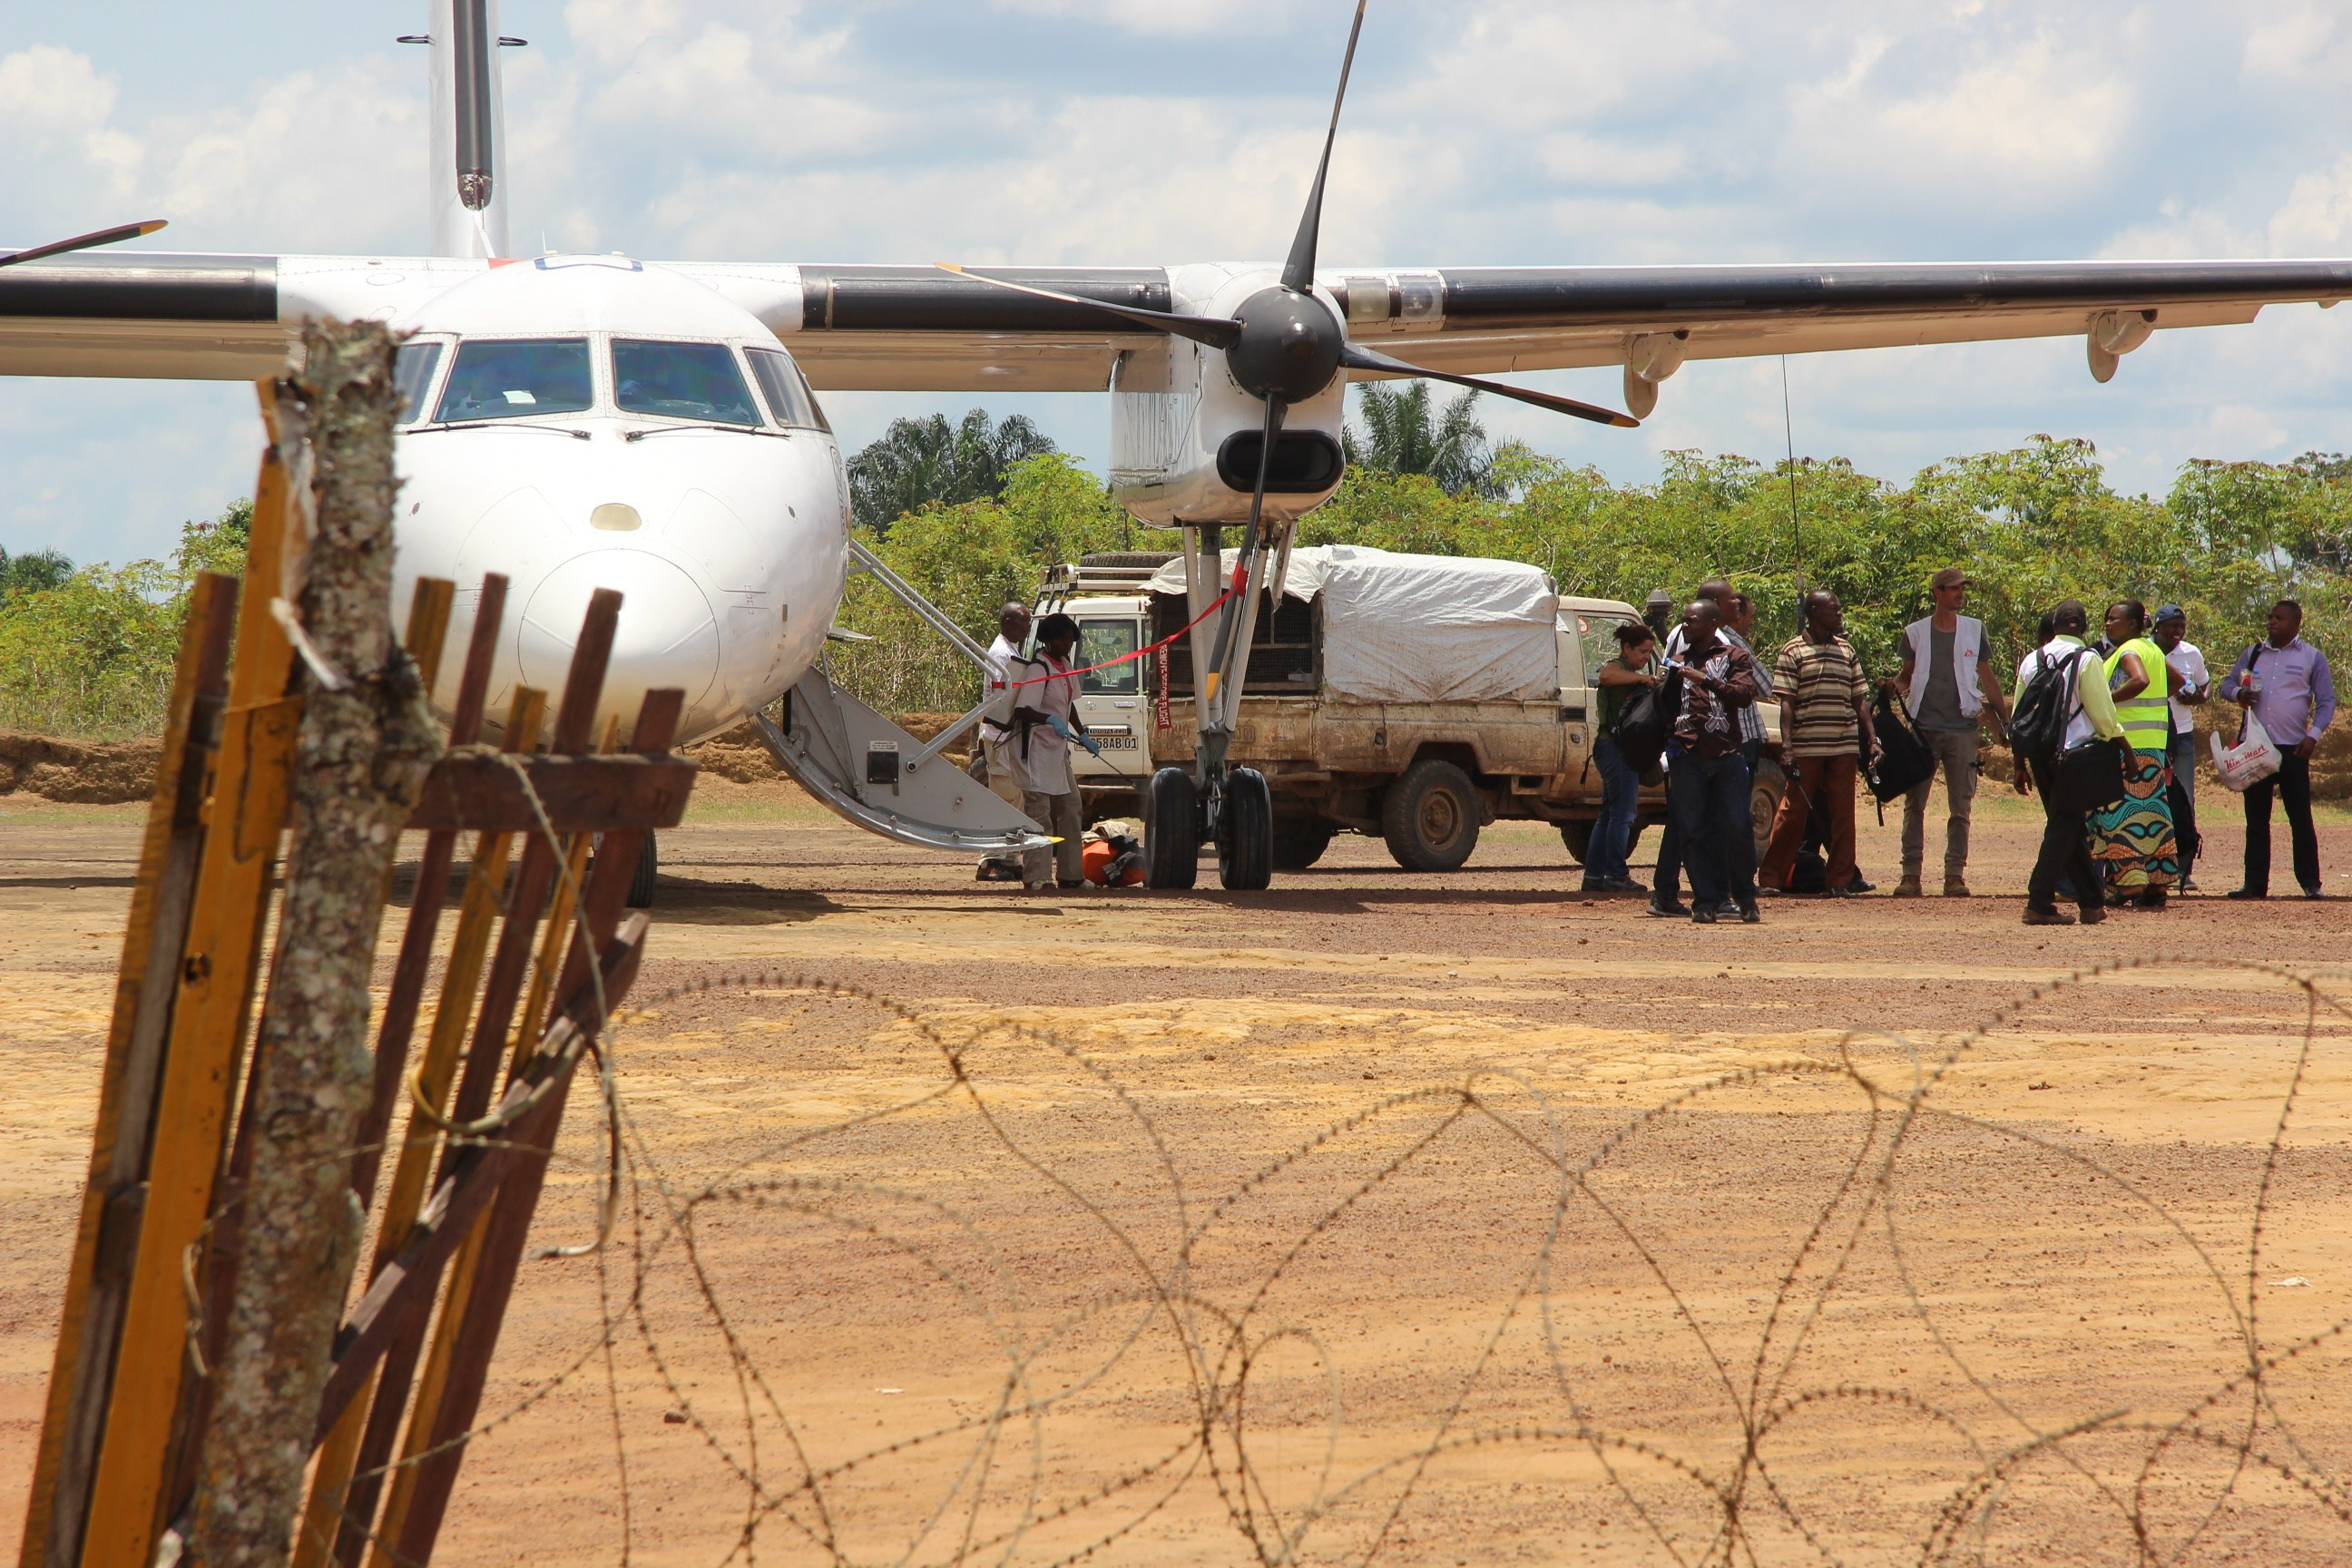 Luggages get disinfected after a plane's arrival at Boende's airport, on October 8, 2014, as part of prophylactic measures against the spread of the Ebola virus.